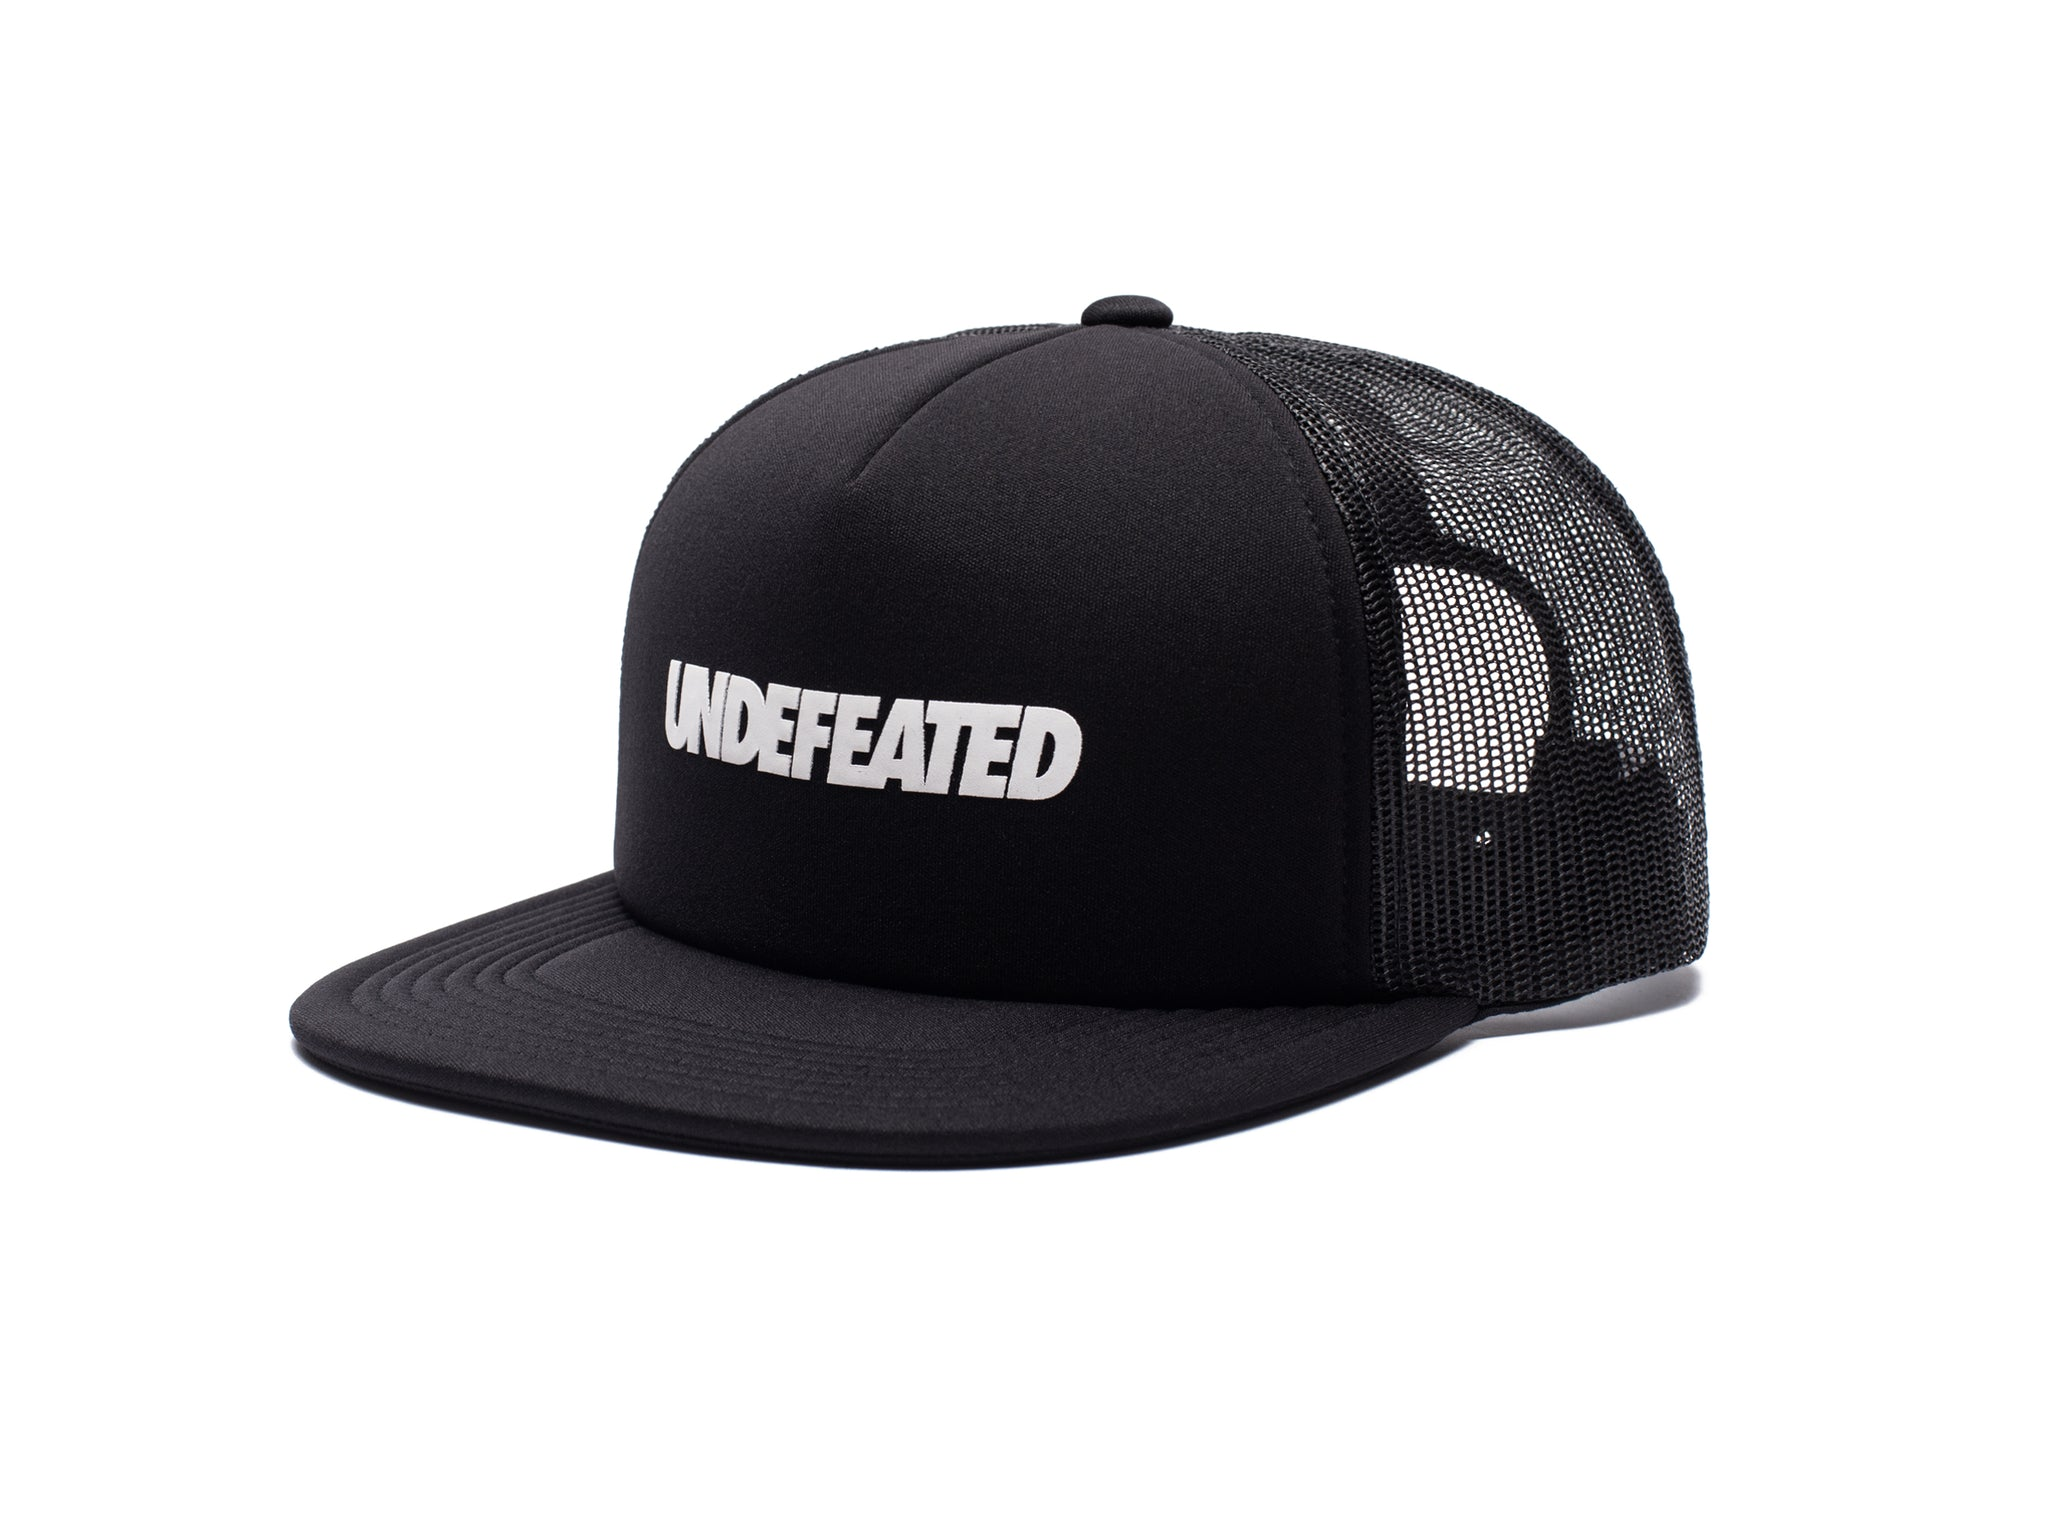 UNDEFEATED LOGO TRUCKER